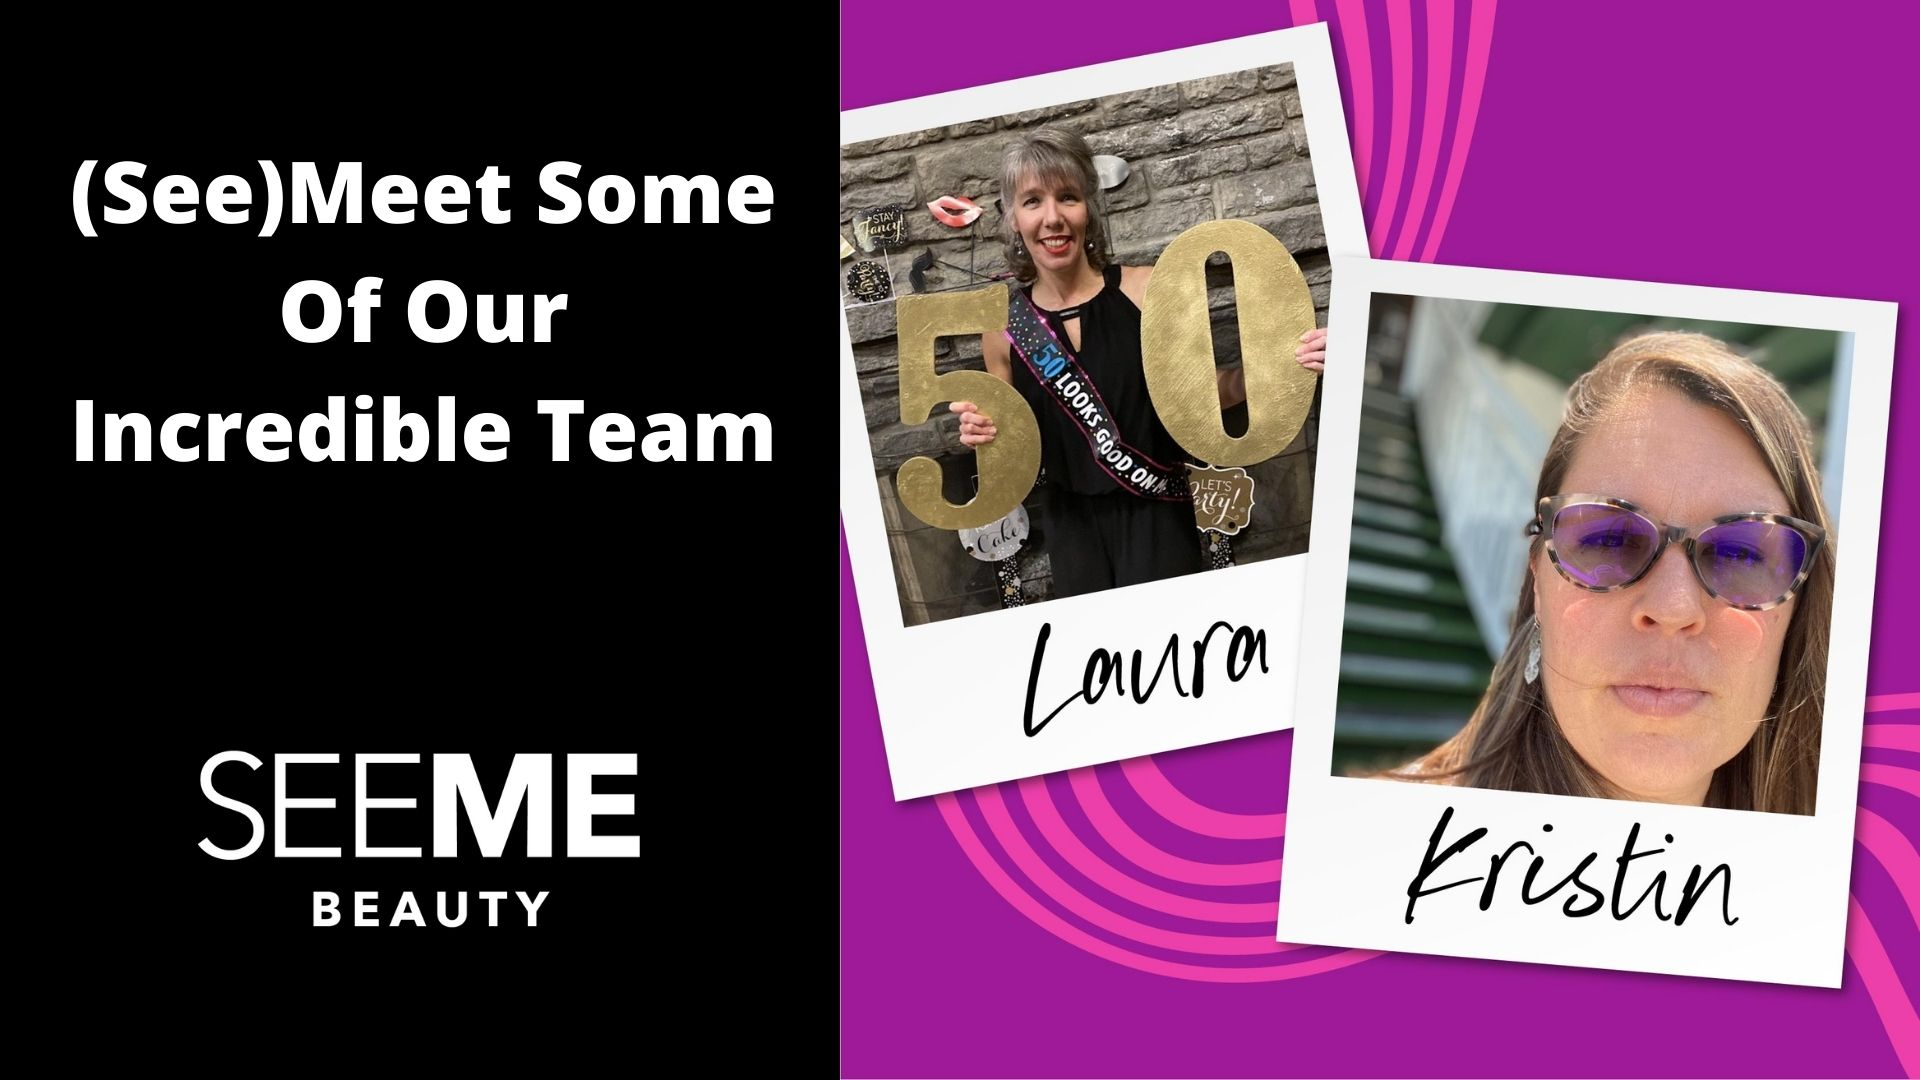 (See) Meet Some of Our Incredible Team - a picture of Laura at her 50s birthday party and a photo of Kristin